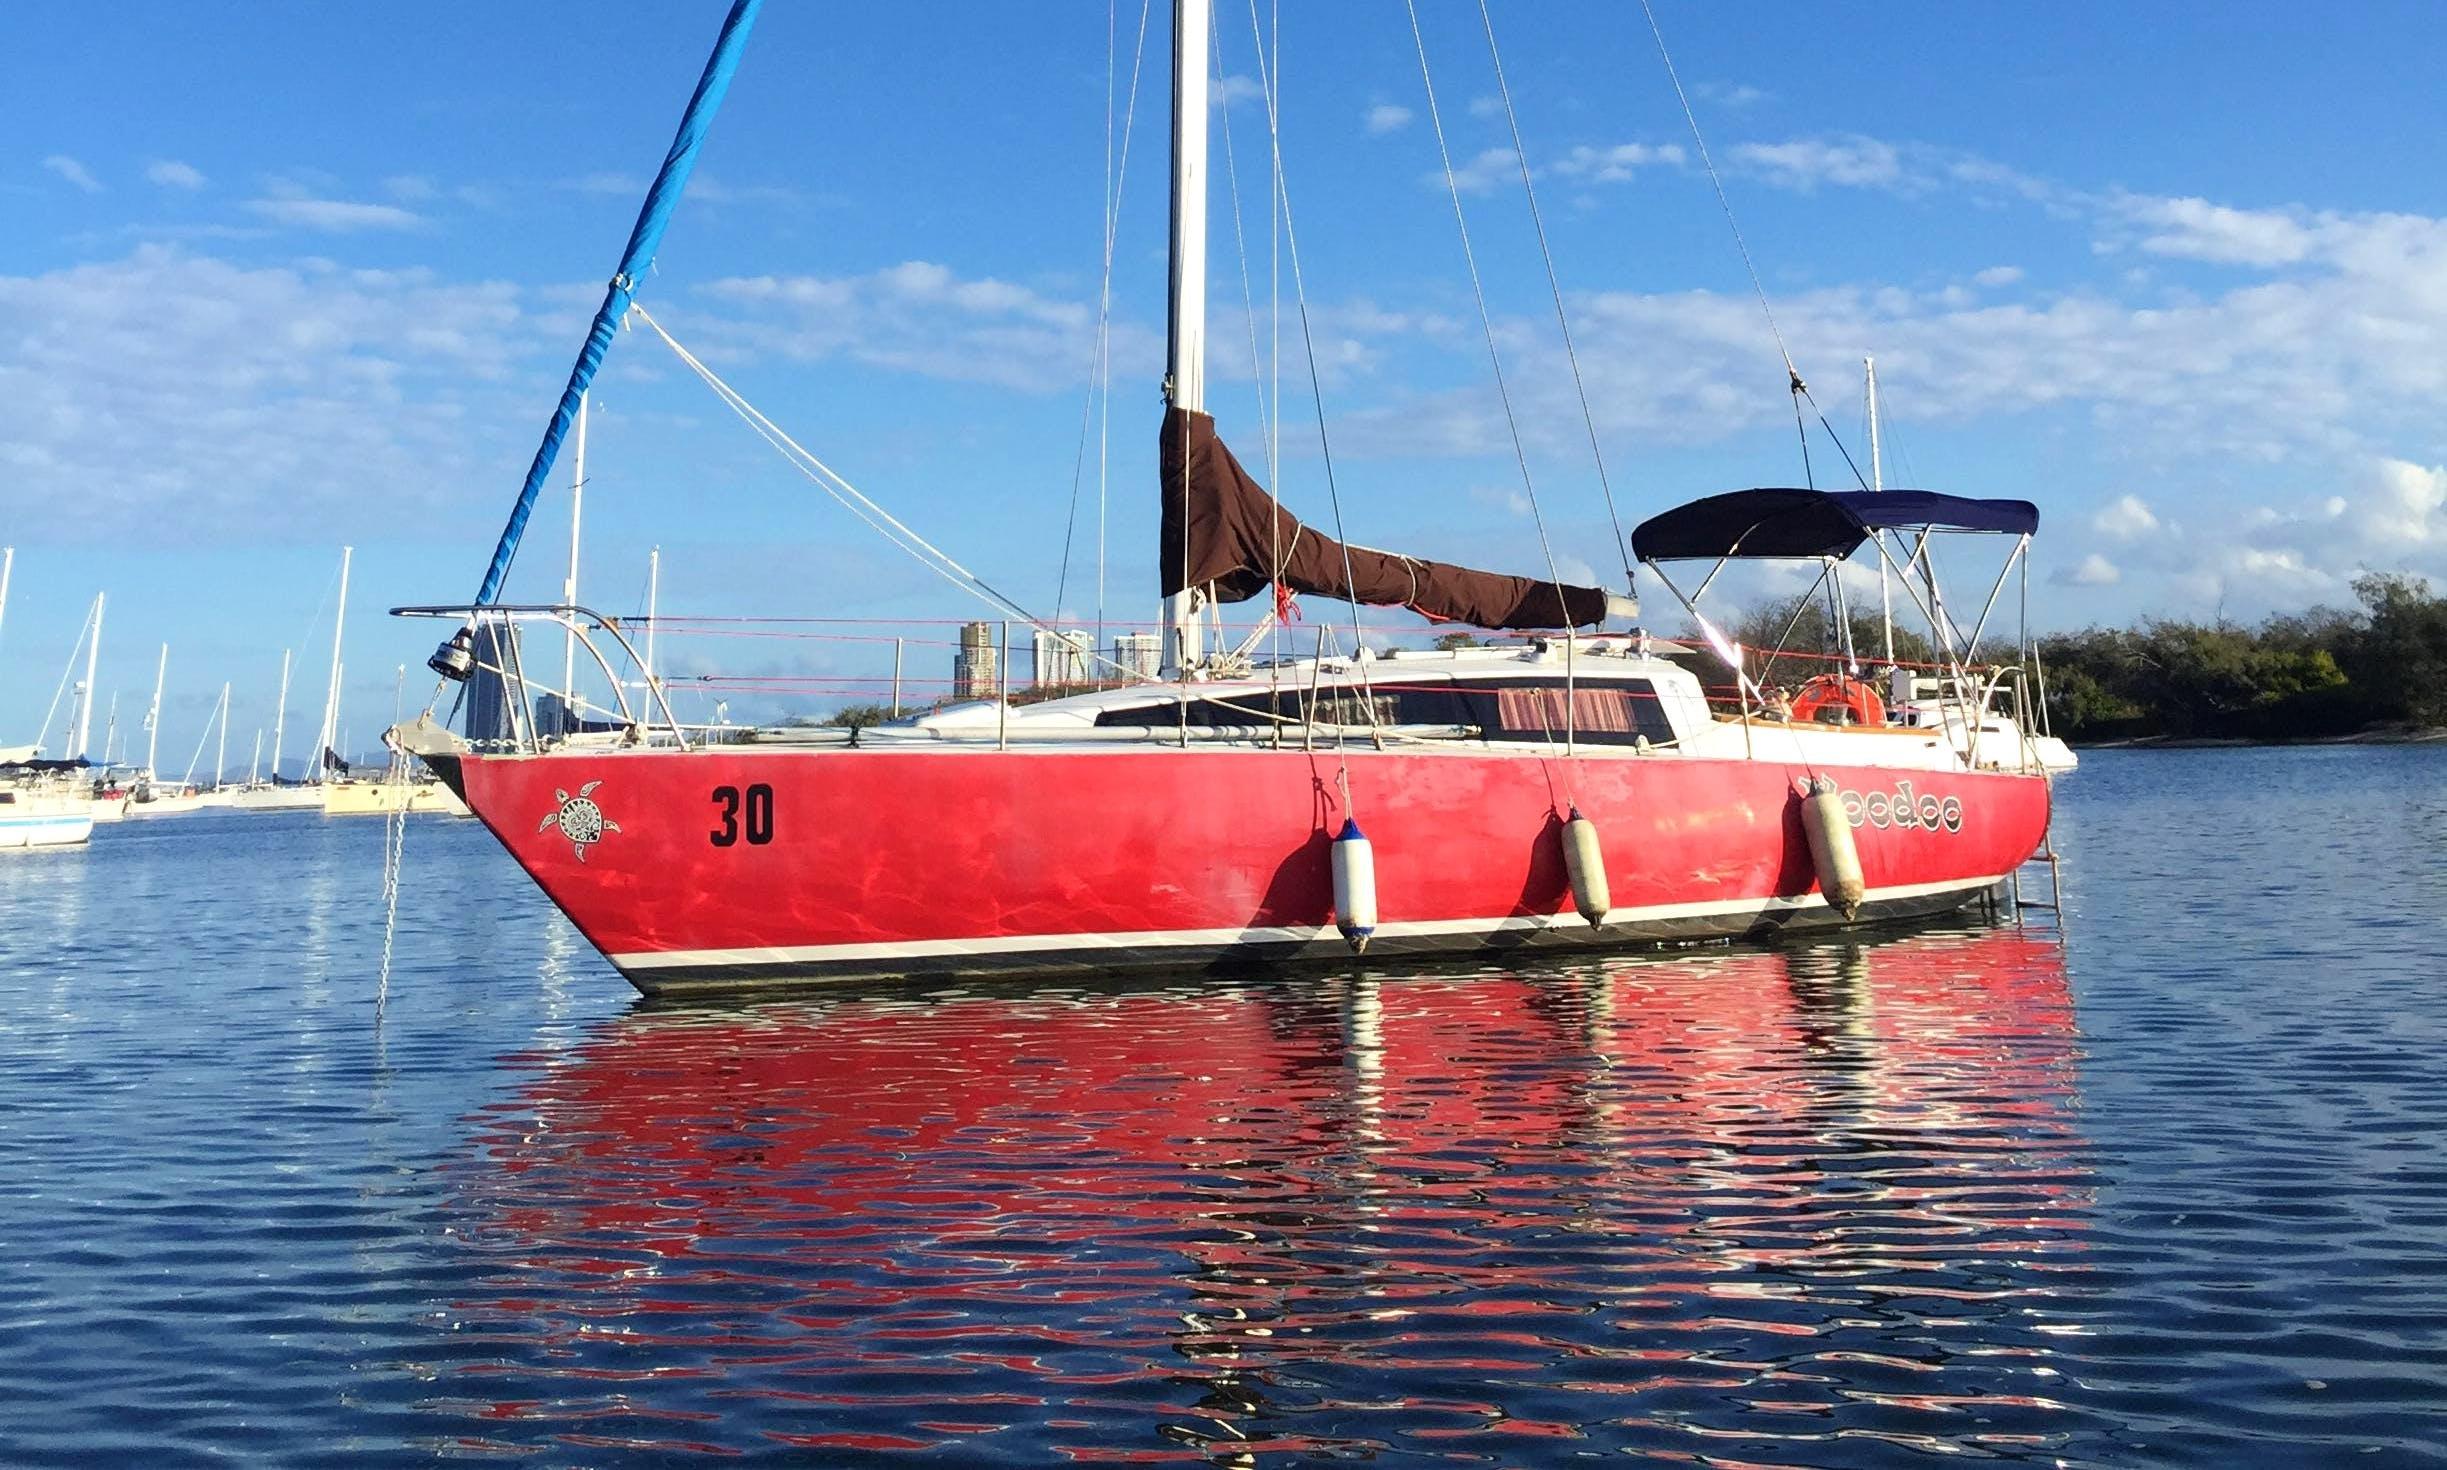 Sloop sailboat for hire in Shorncliffe, Australia